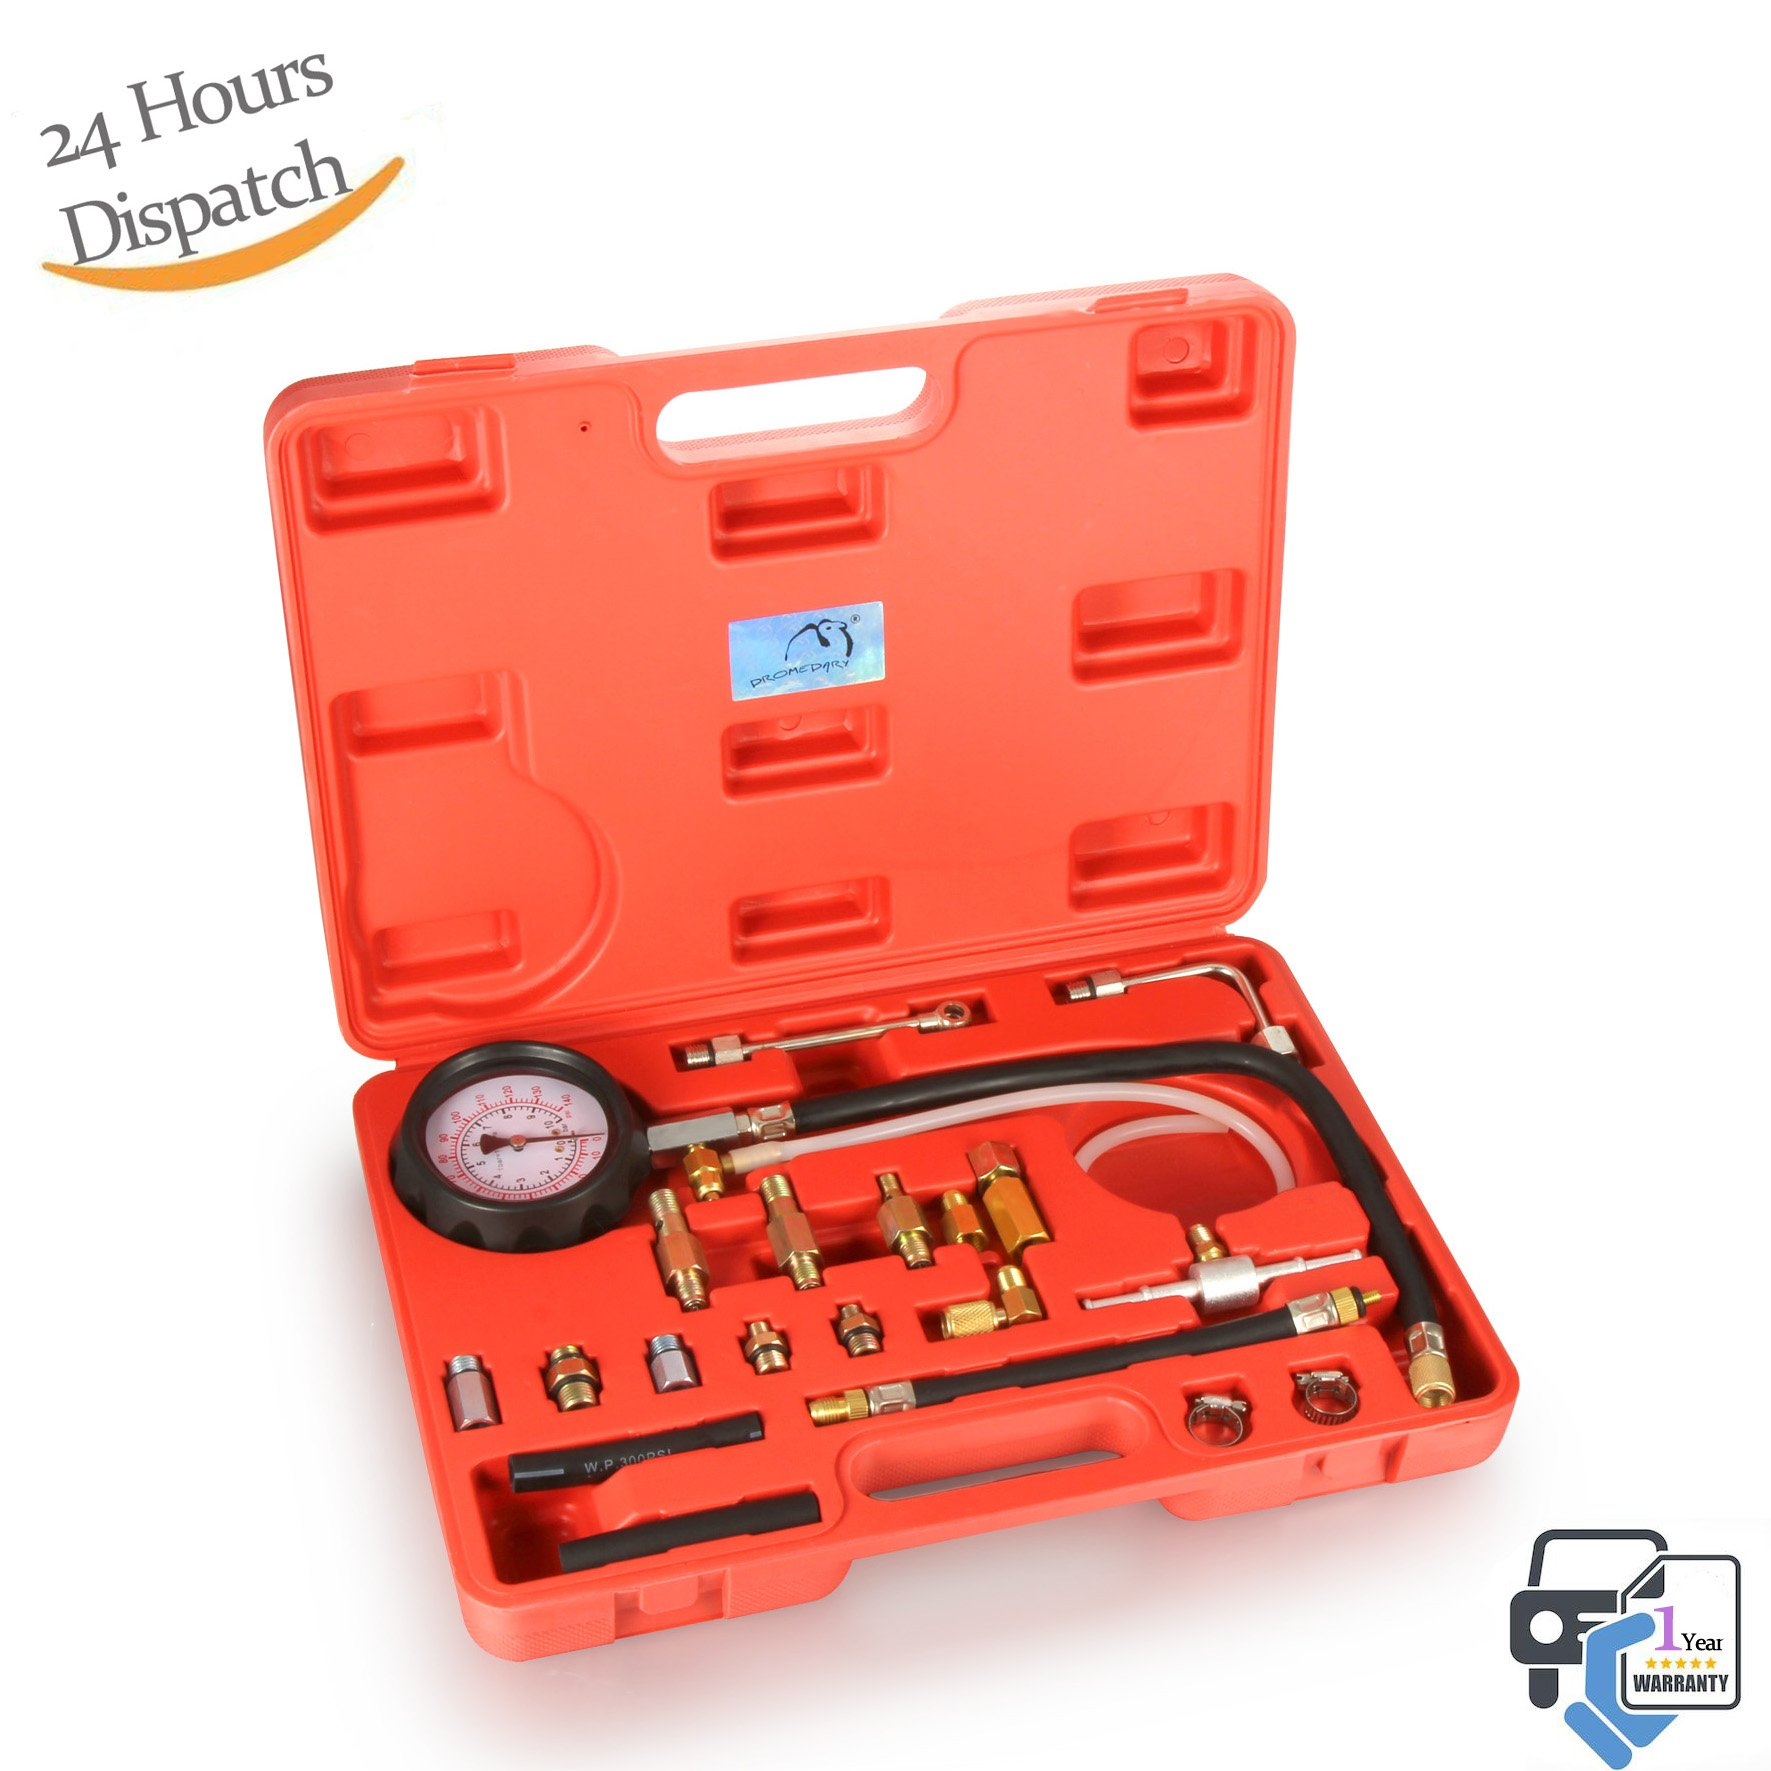 Dromedary Fuel Injection Pump Injector Tester Kit Test Pressure Gauge Red Case 0-140PSI